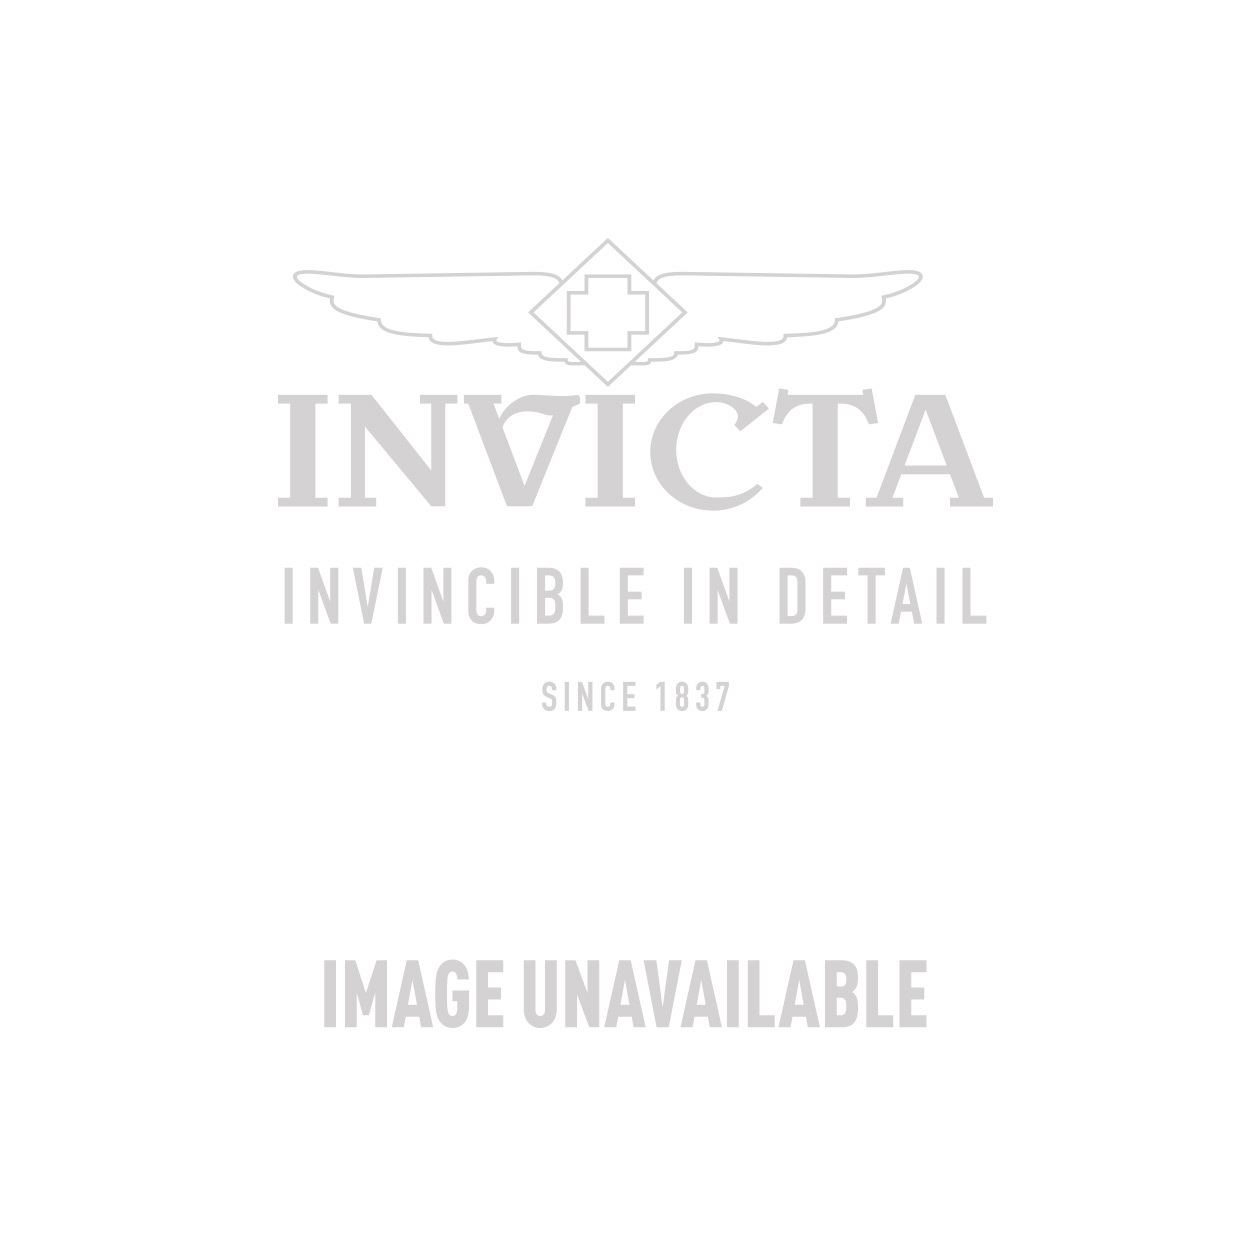 Invicta Bolt Swiss Made Automatic Watch - Gold case with Gold tone Stainless Steel band - Model 12763